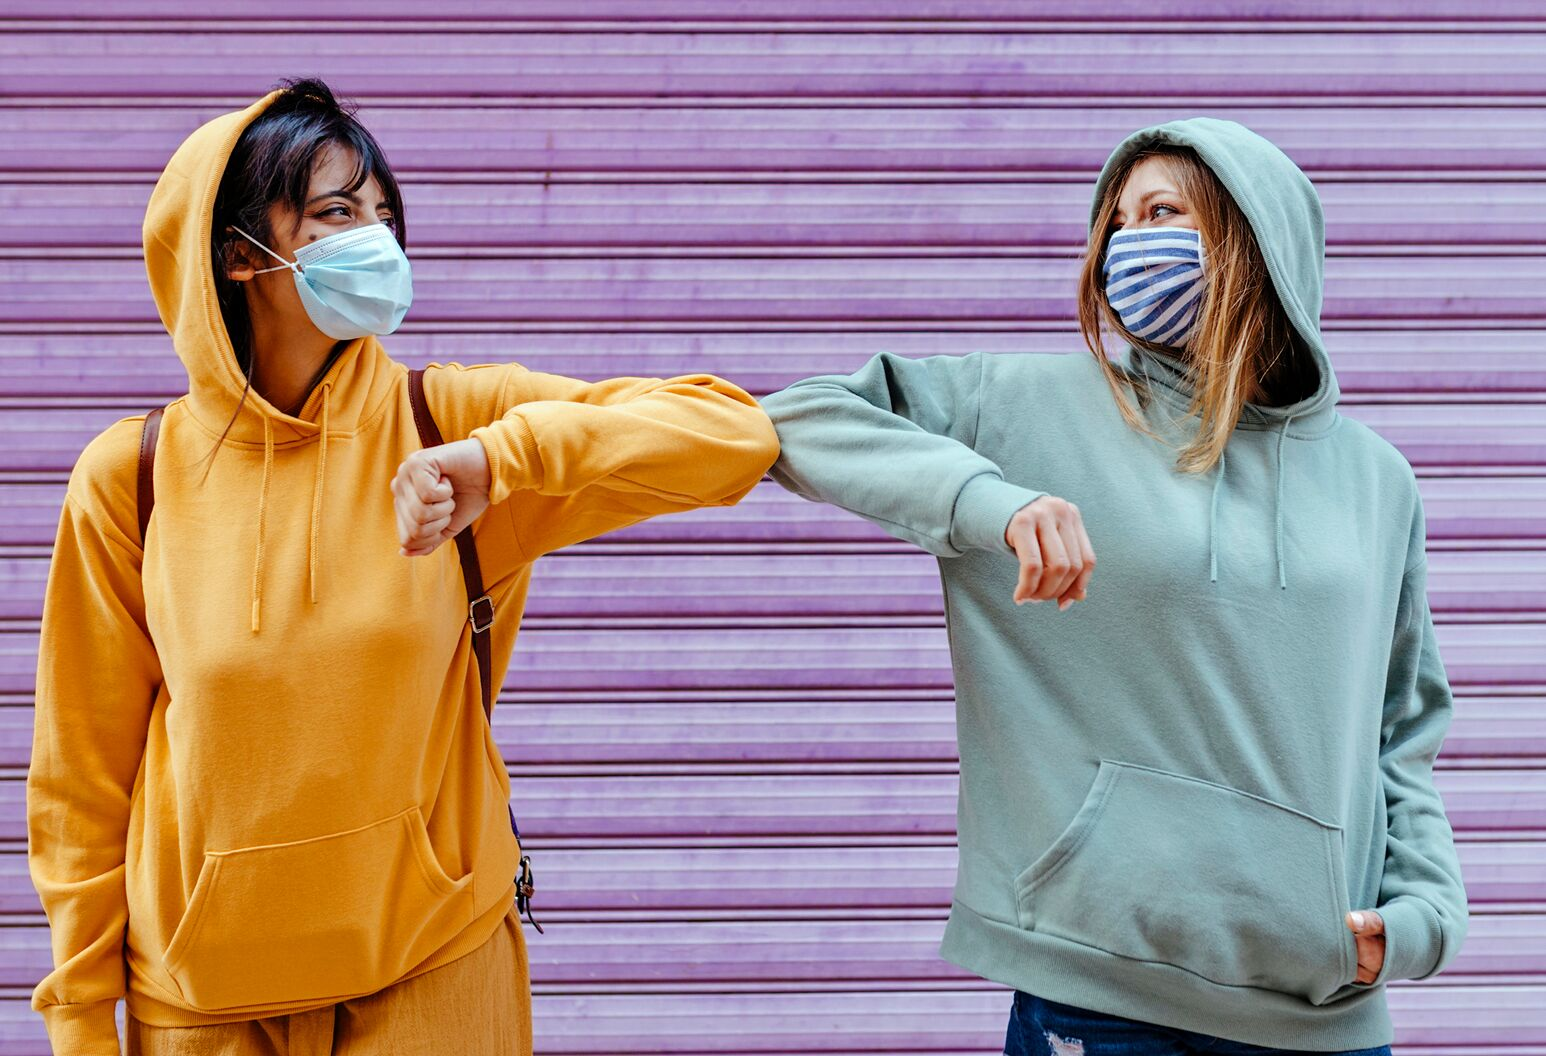 Two dark-haired young women in sweatshirts and masks happily bump elbows